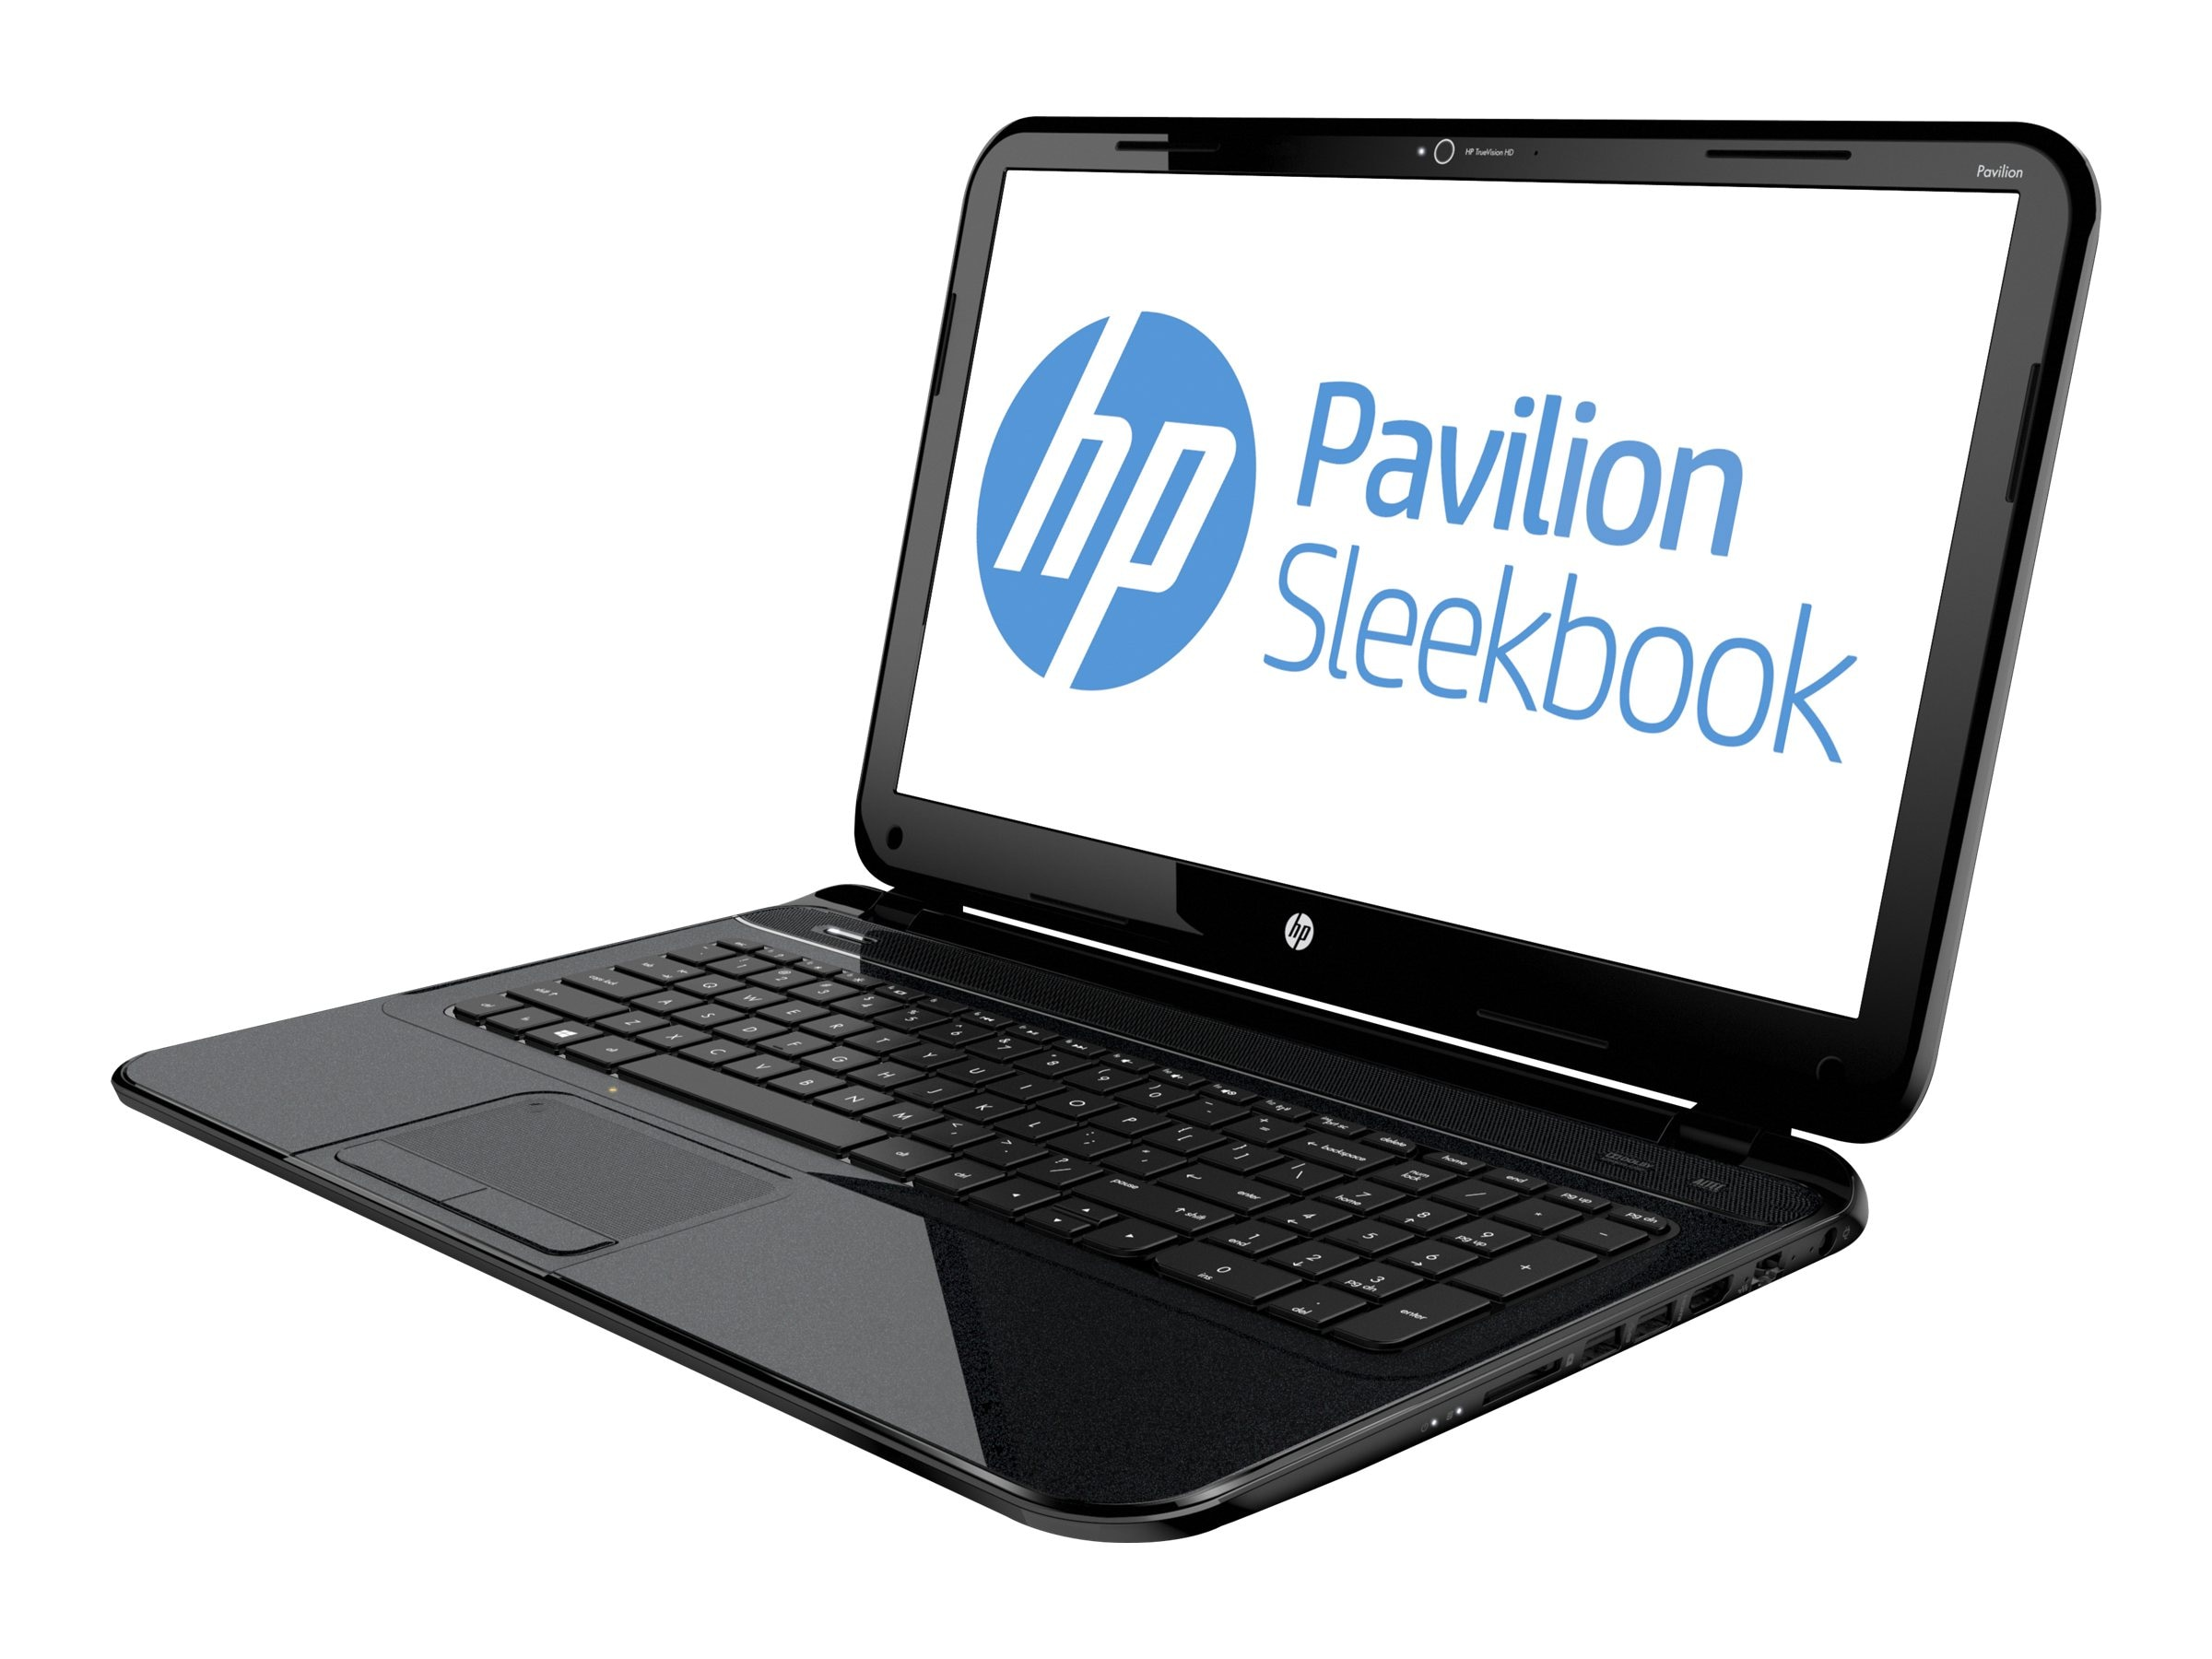 HP Pavilion Sleekbook 15-b140us 1.9GHz Core i3 15.6in display